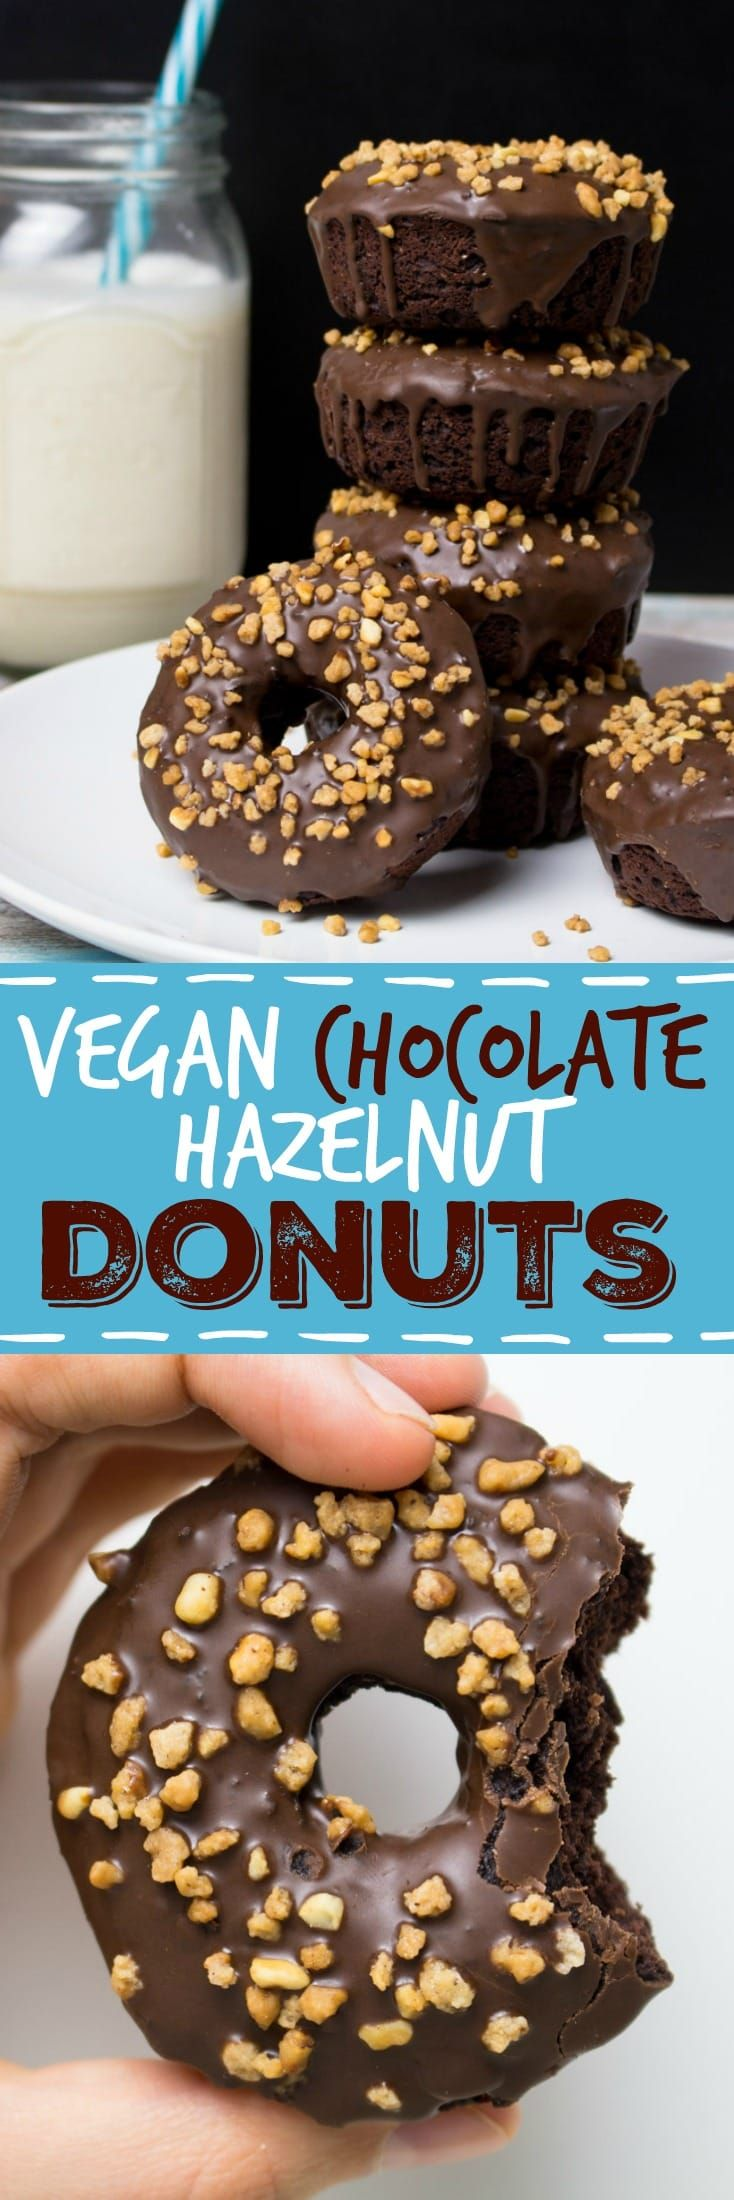 Vegan Chocolate Hazelnut Donuts-I'll try subbing the brown sugar for coconut sugar